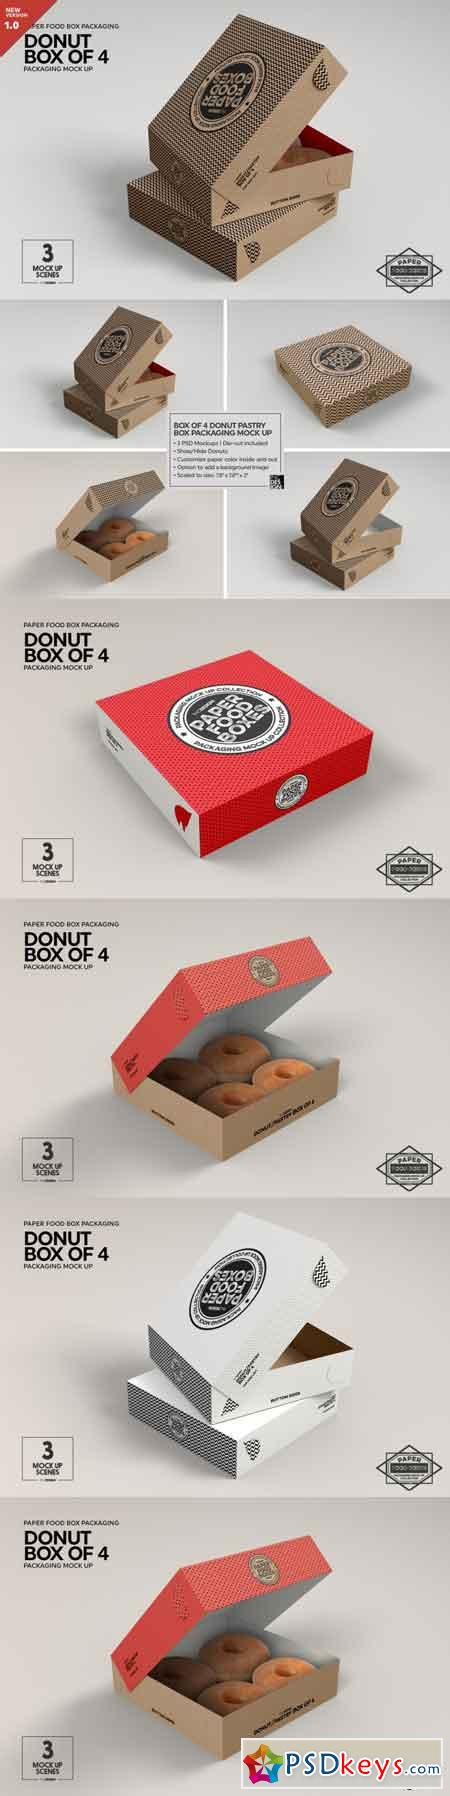 Box of Four Donut Pastry Box Mockup 3485118